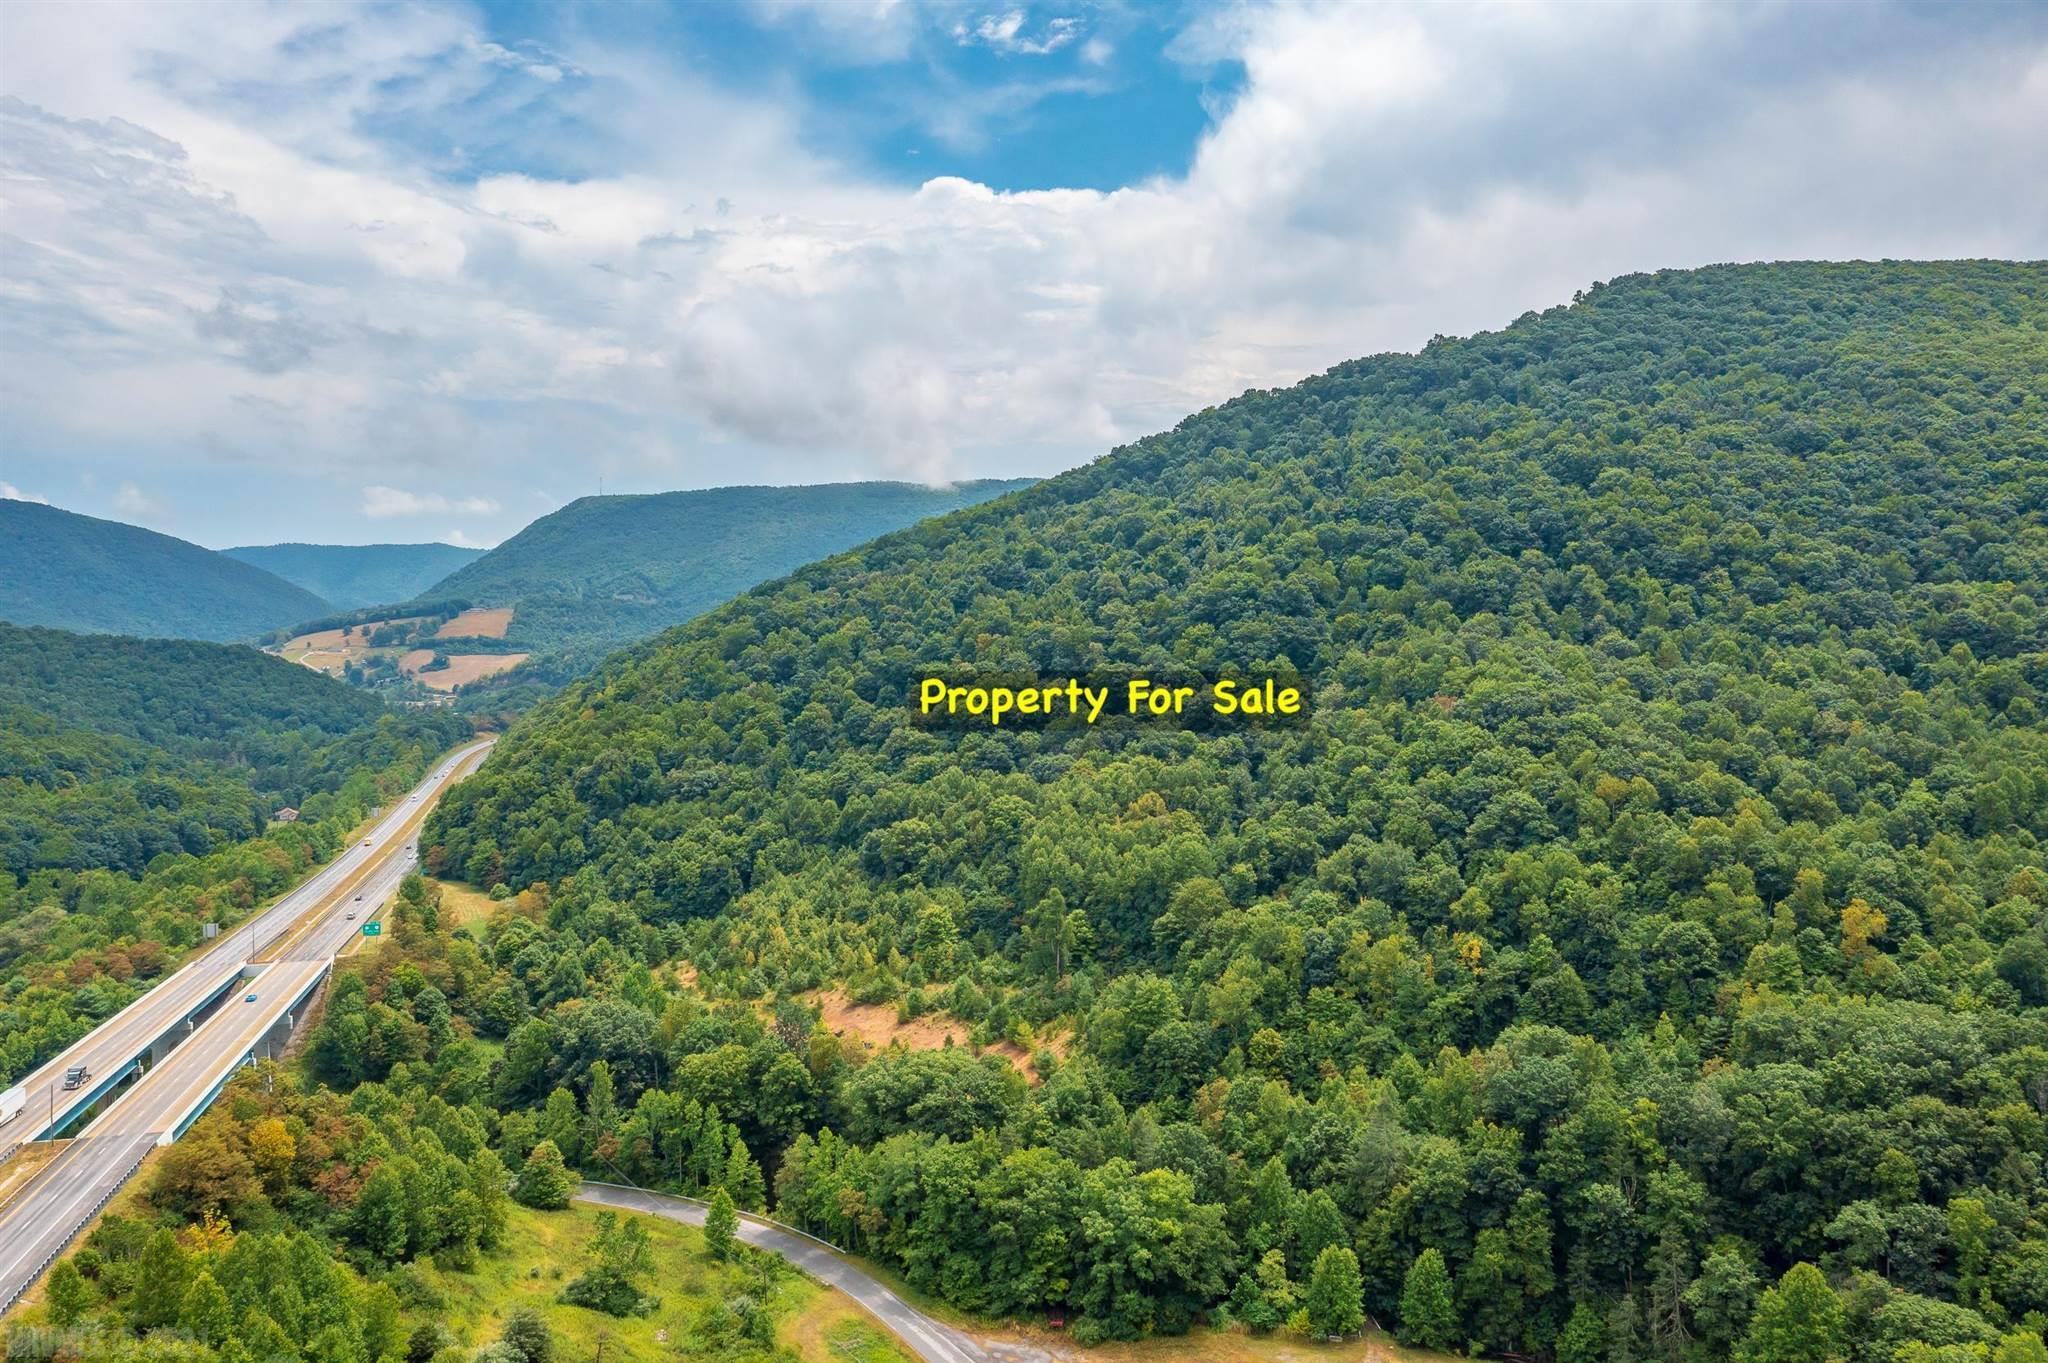 +/-72.5 acres of mountain land just off I-77 in Bland County, VA. This property has creek frontage on Laurel Creek and would be perfect for hunting and fishing, riding your ATV's, or for building that small cabin in the woods that you've always wanted. Easy access from a paved, state maintained road and a small bridge crossing the creek is already in place. On top of it all, there is even public water availability at the road frontage! Located just on the VA side of East River Mountain in Rocky Gap, VA.